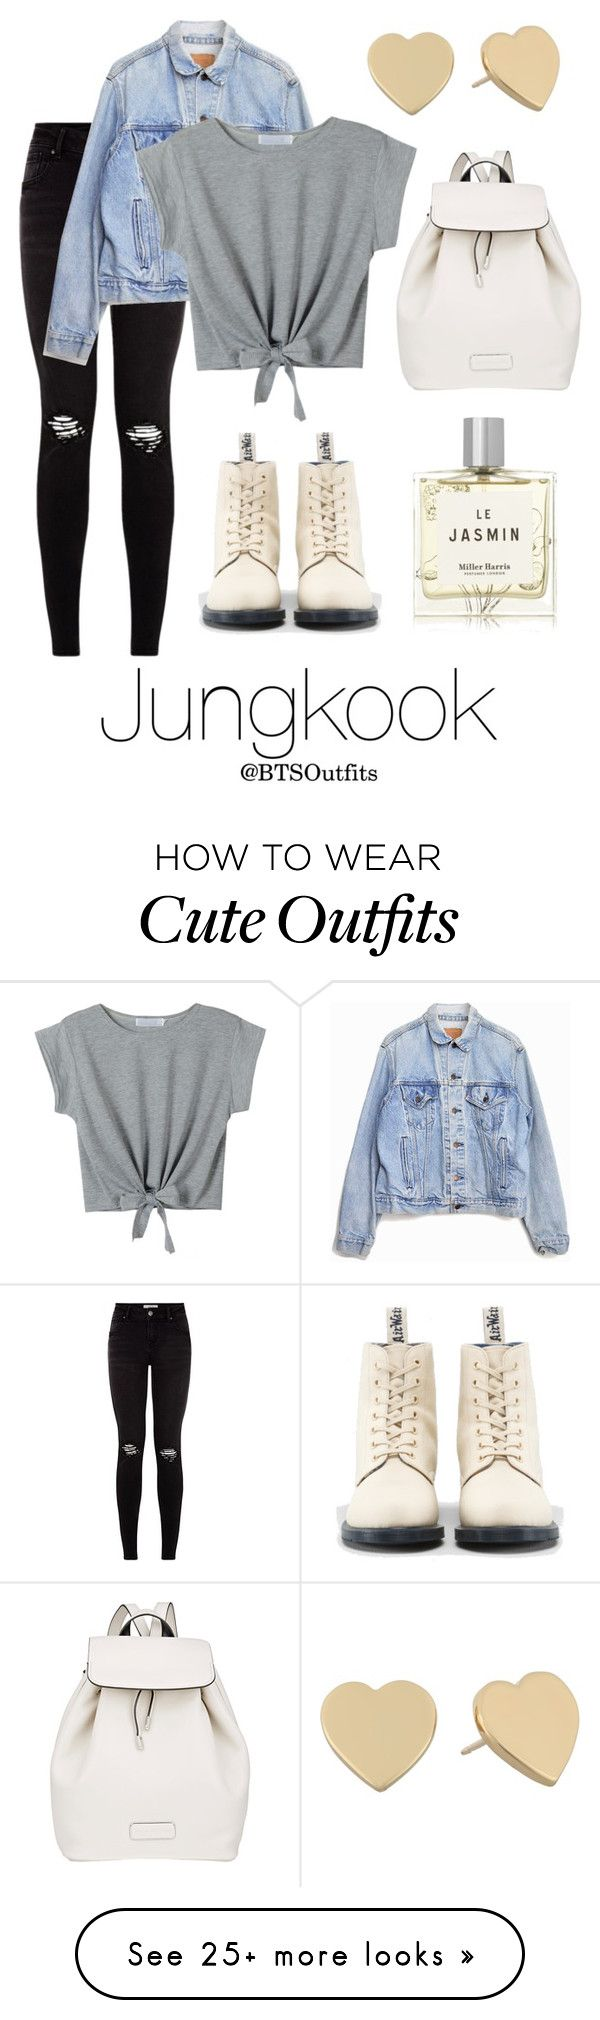 """""""Cute/Flirty Outfit with Jungkook"""" by btsoutfits on Polyvore featuring Levi's, Dr. Martens, Marc by Marc Jacobs, Miller Harris and Kate Spade"""